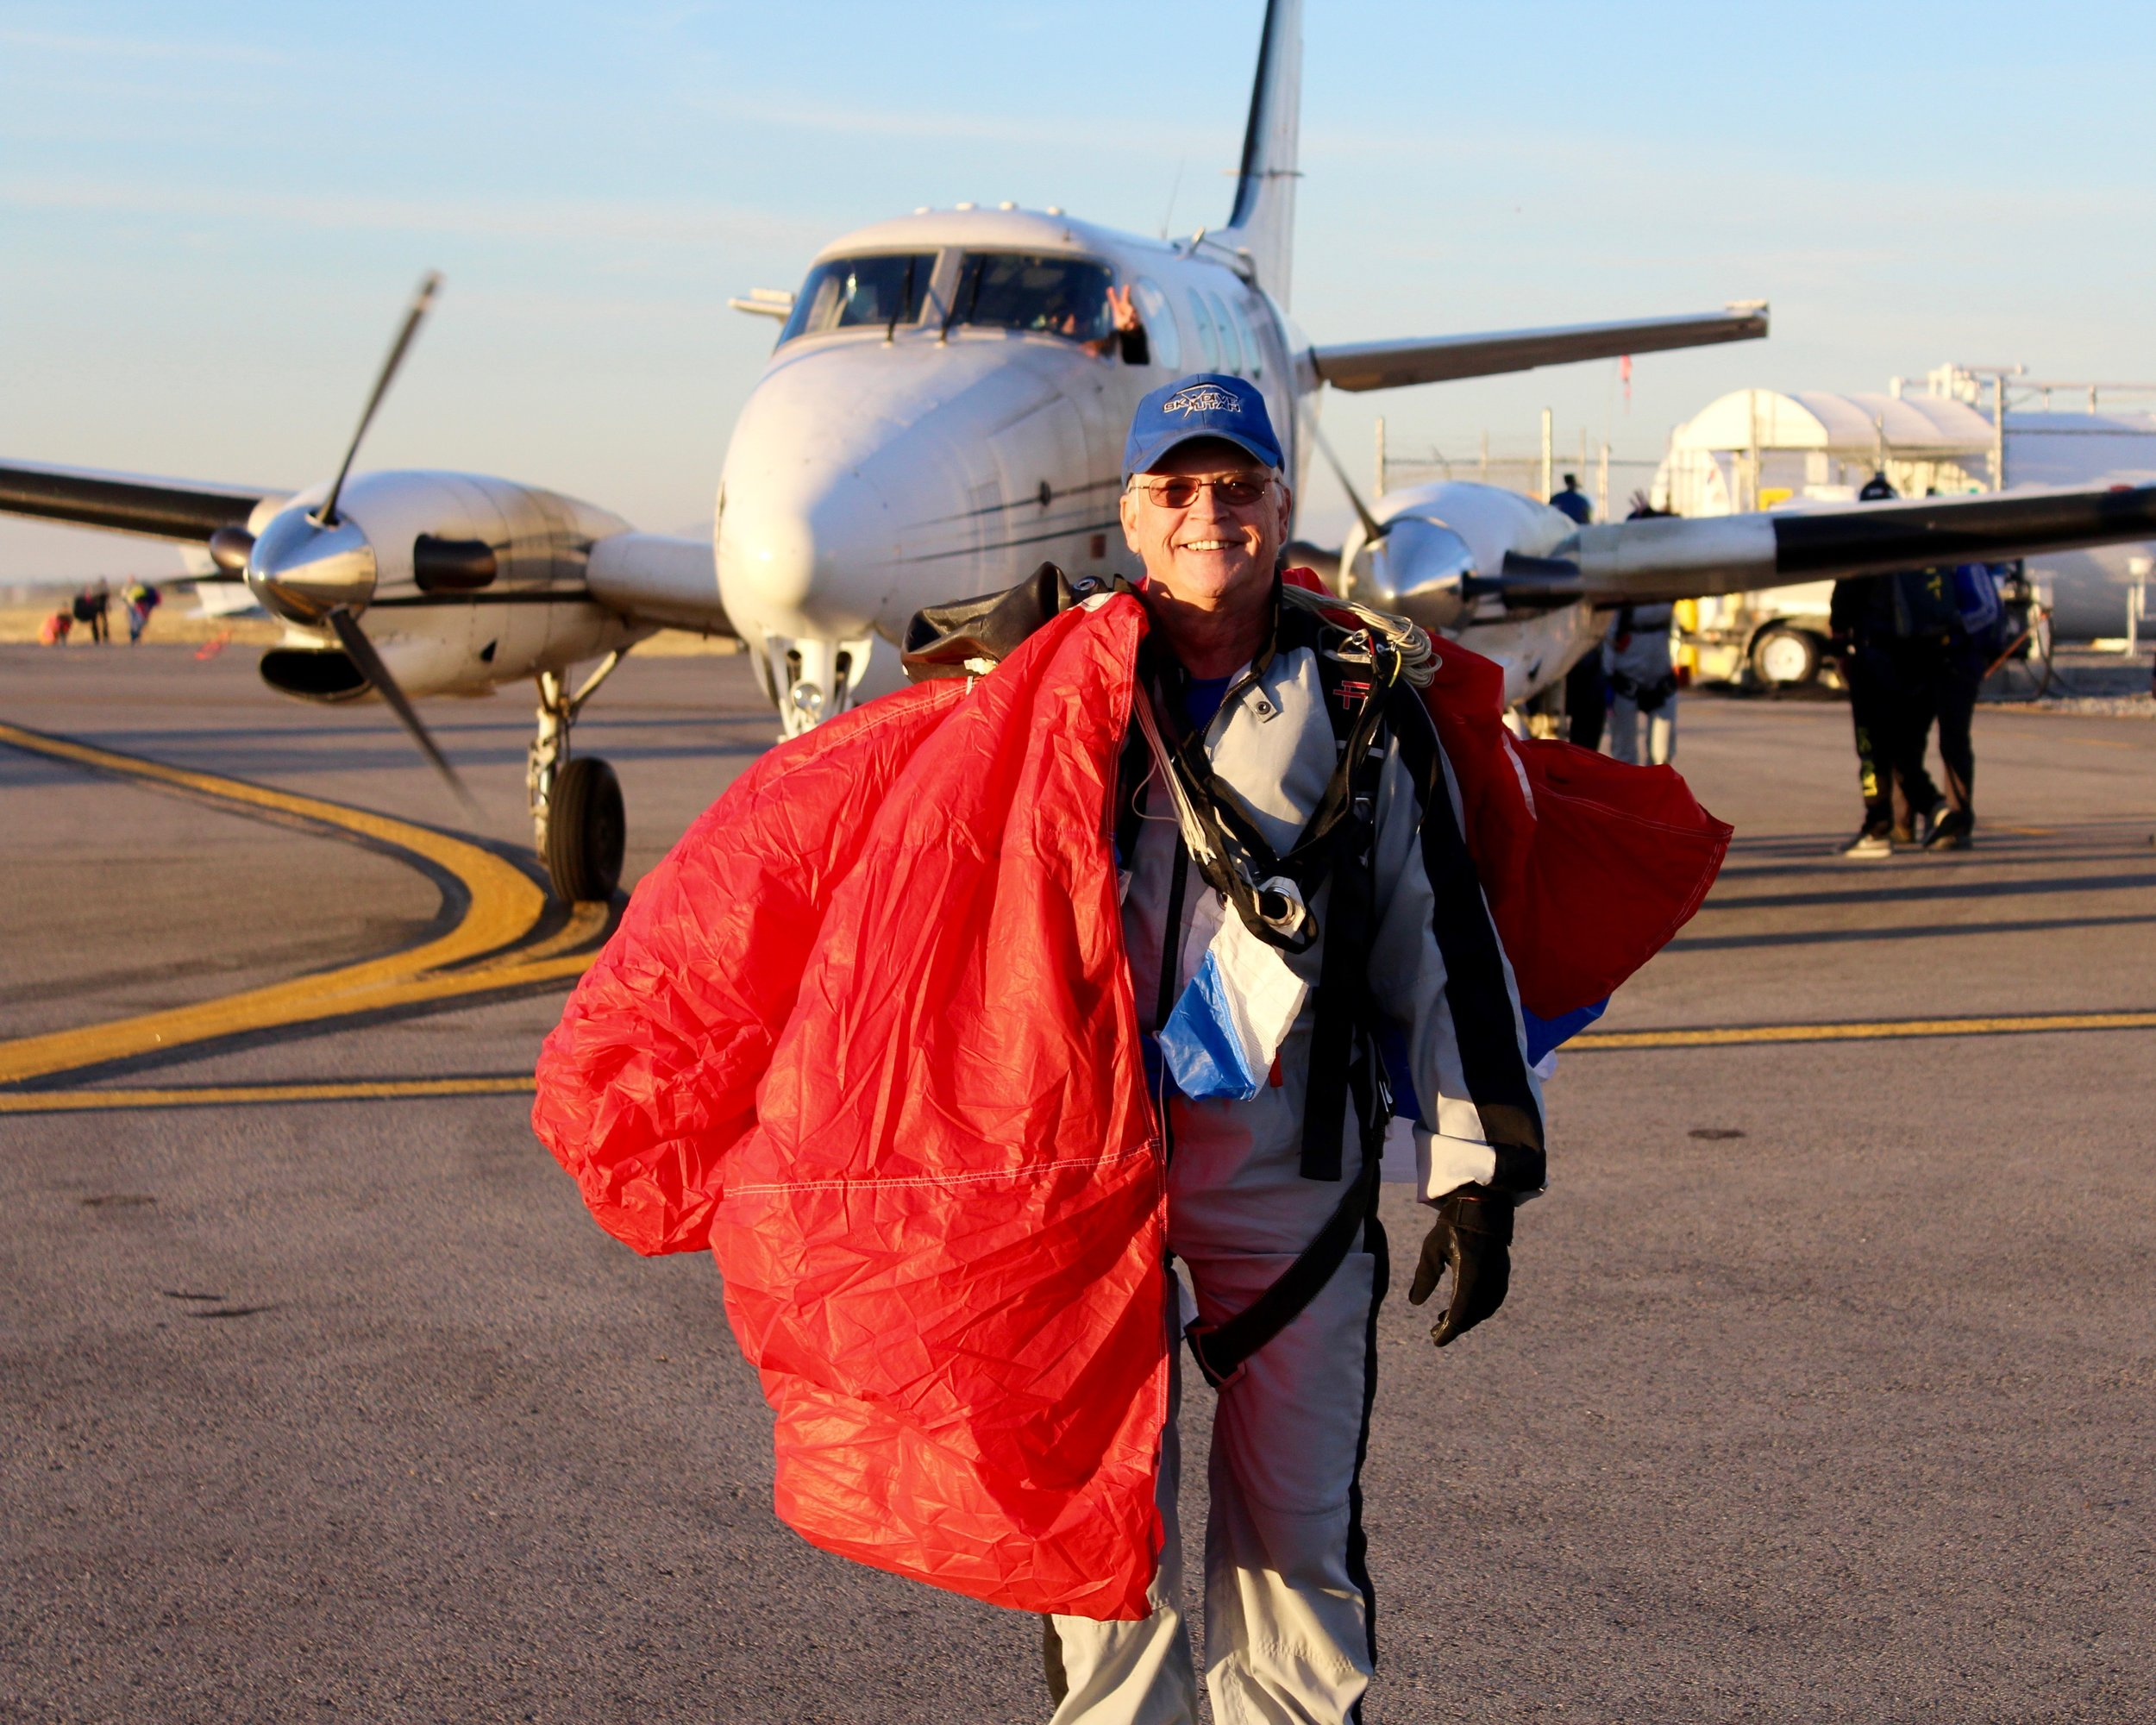 Jack Guthrie makes his first skydive as a recreational skydiver after retiring.